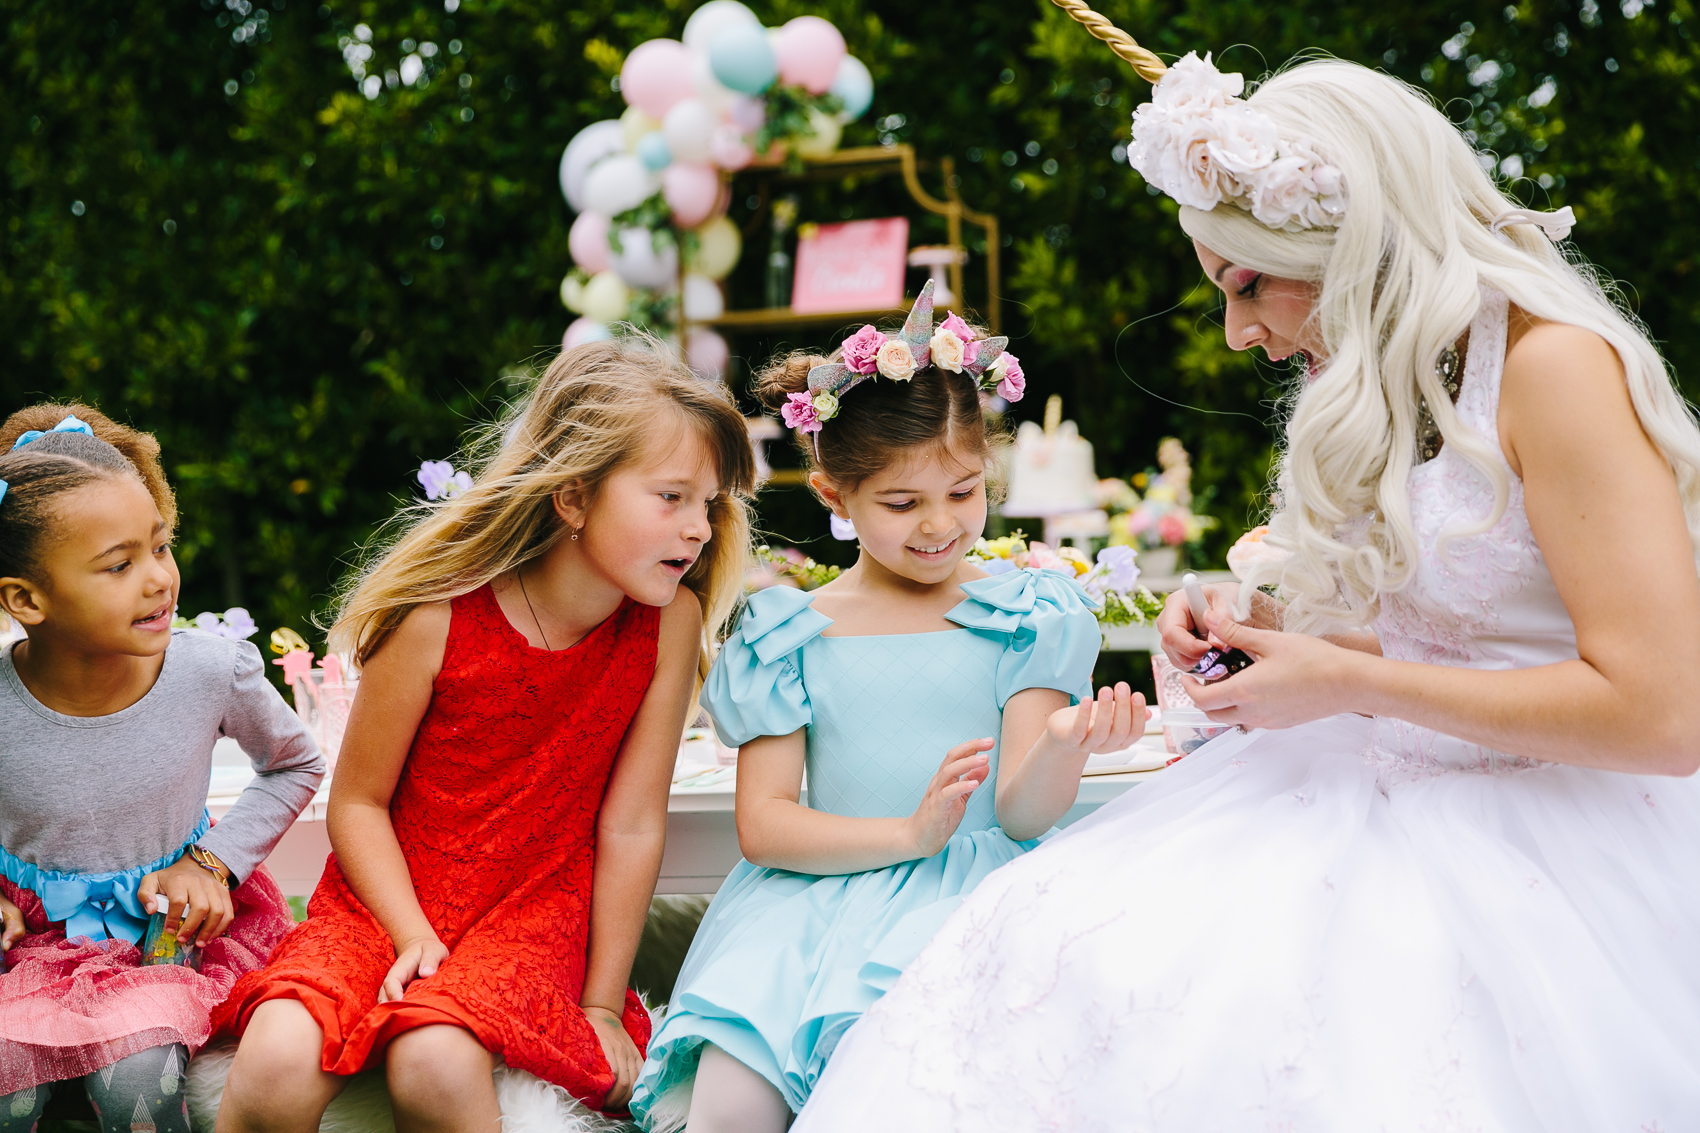 Los_Angeles_Family_Photographer_Luxury_Childrens_Party_Beverly_Hills_Unicorn_Birthday_Party-0857.jpg